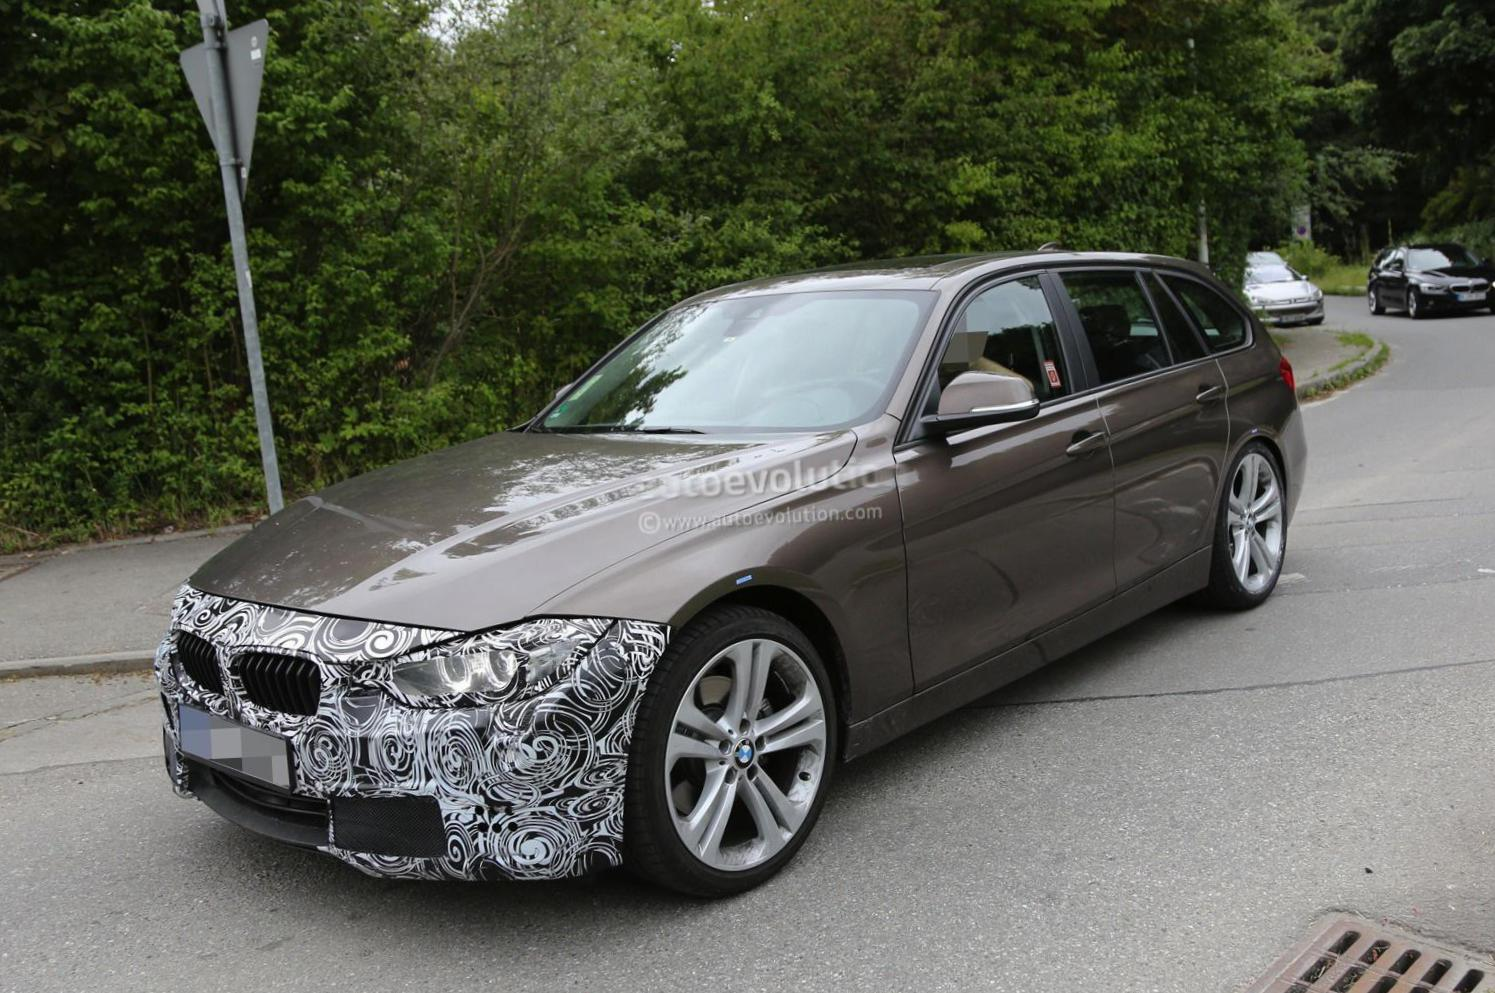 3 Series Sedan (F30) BMW cost minivan